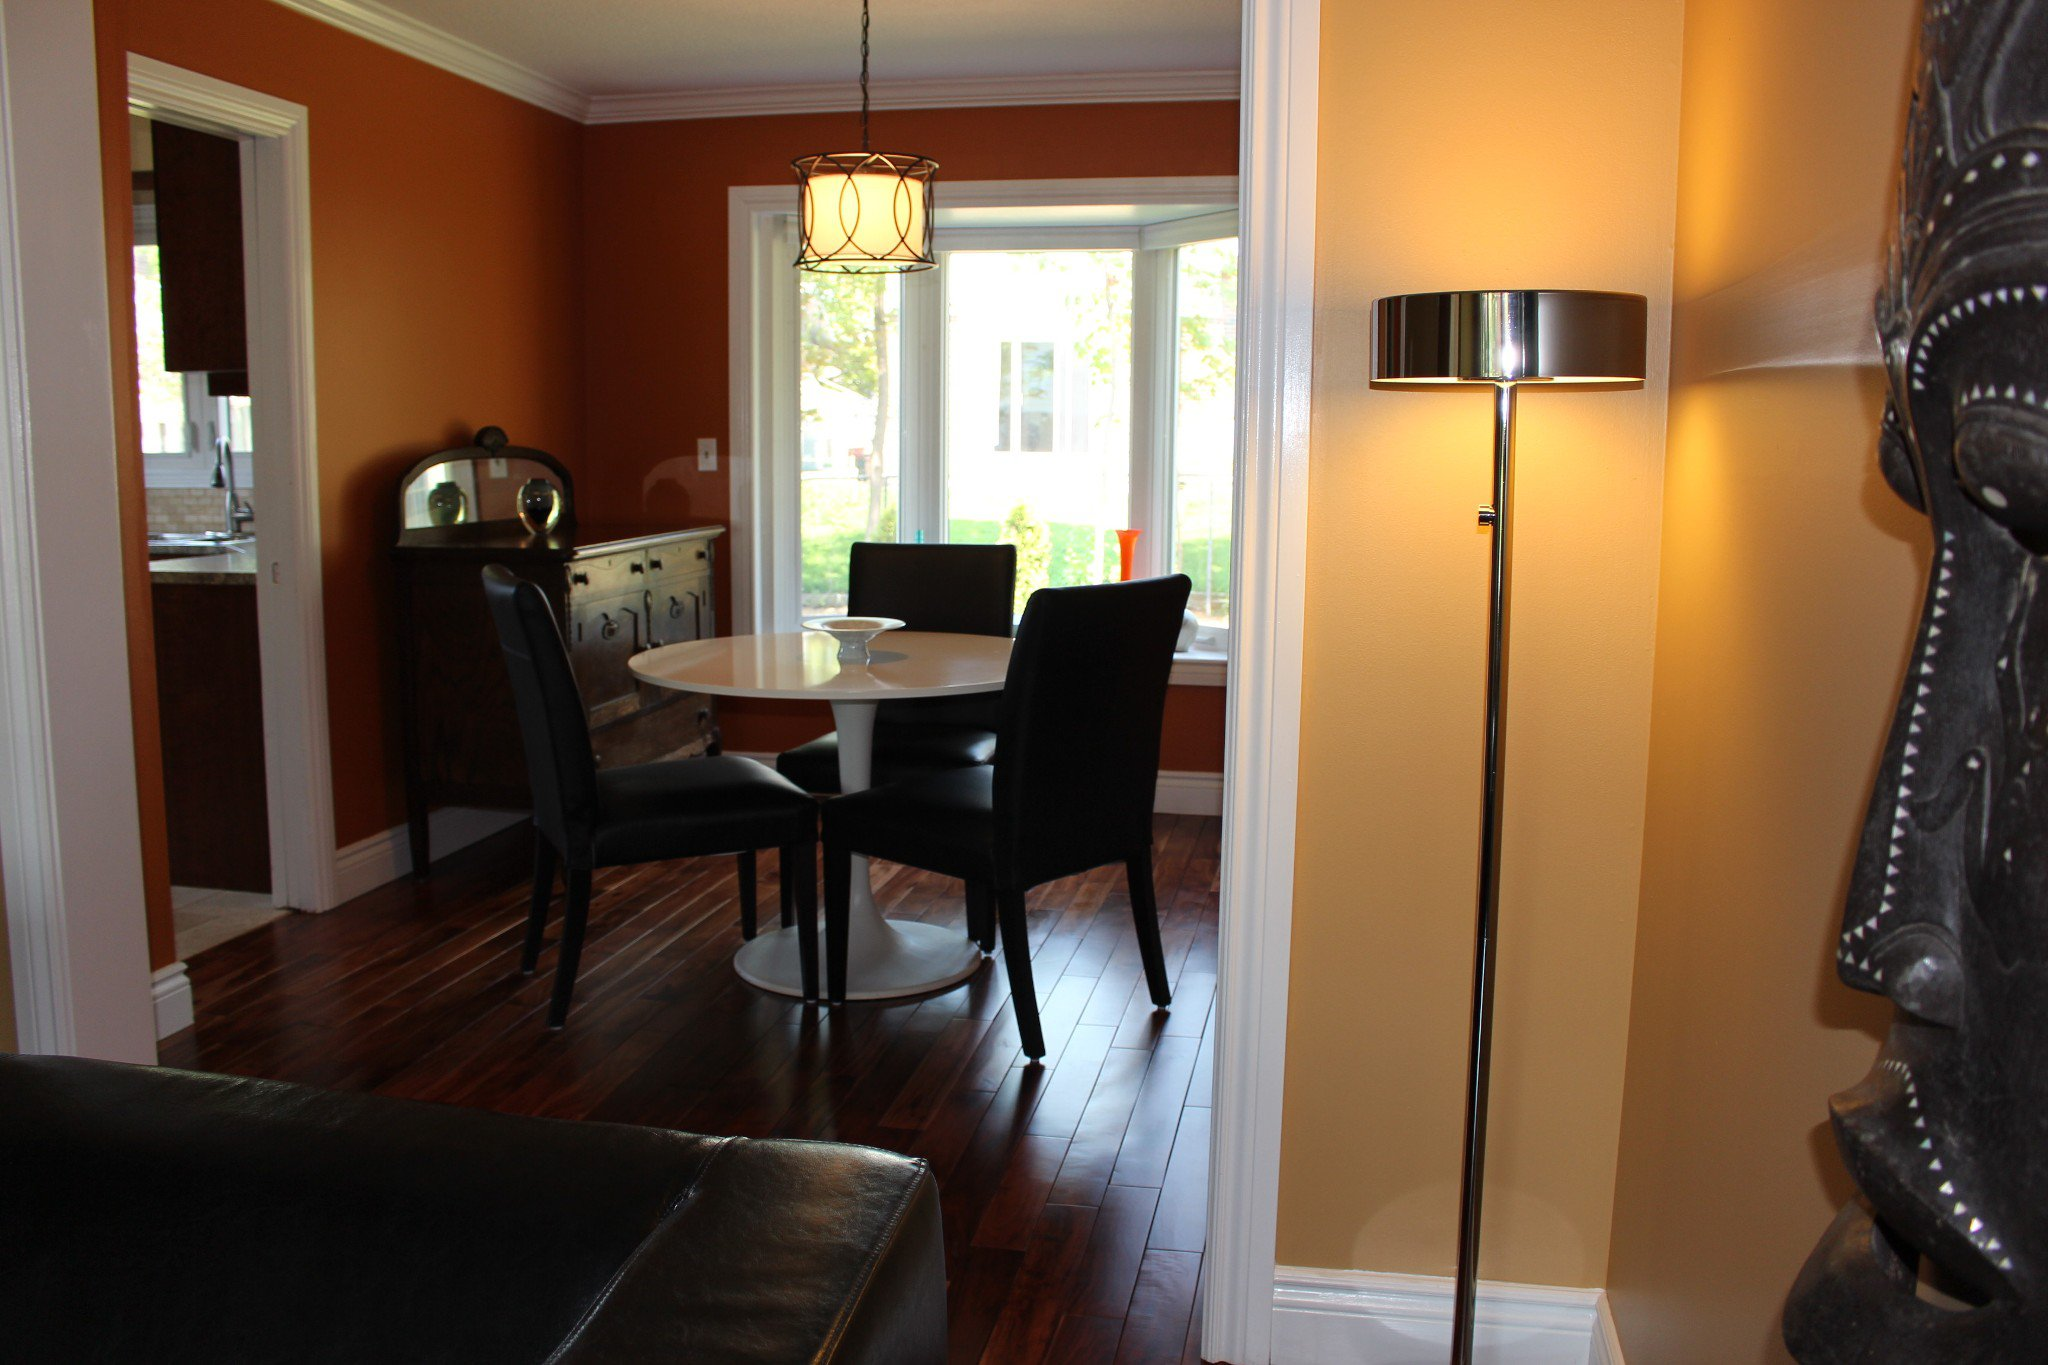 Photo 9: Photos: 751 Spragge Crescent in Cobourg: Residential Detached for sale : MLS®# 1291056